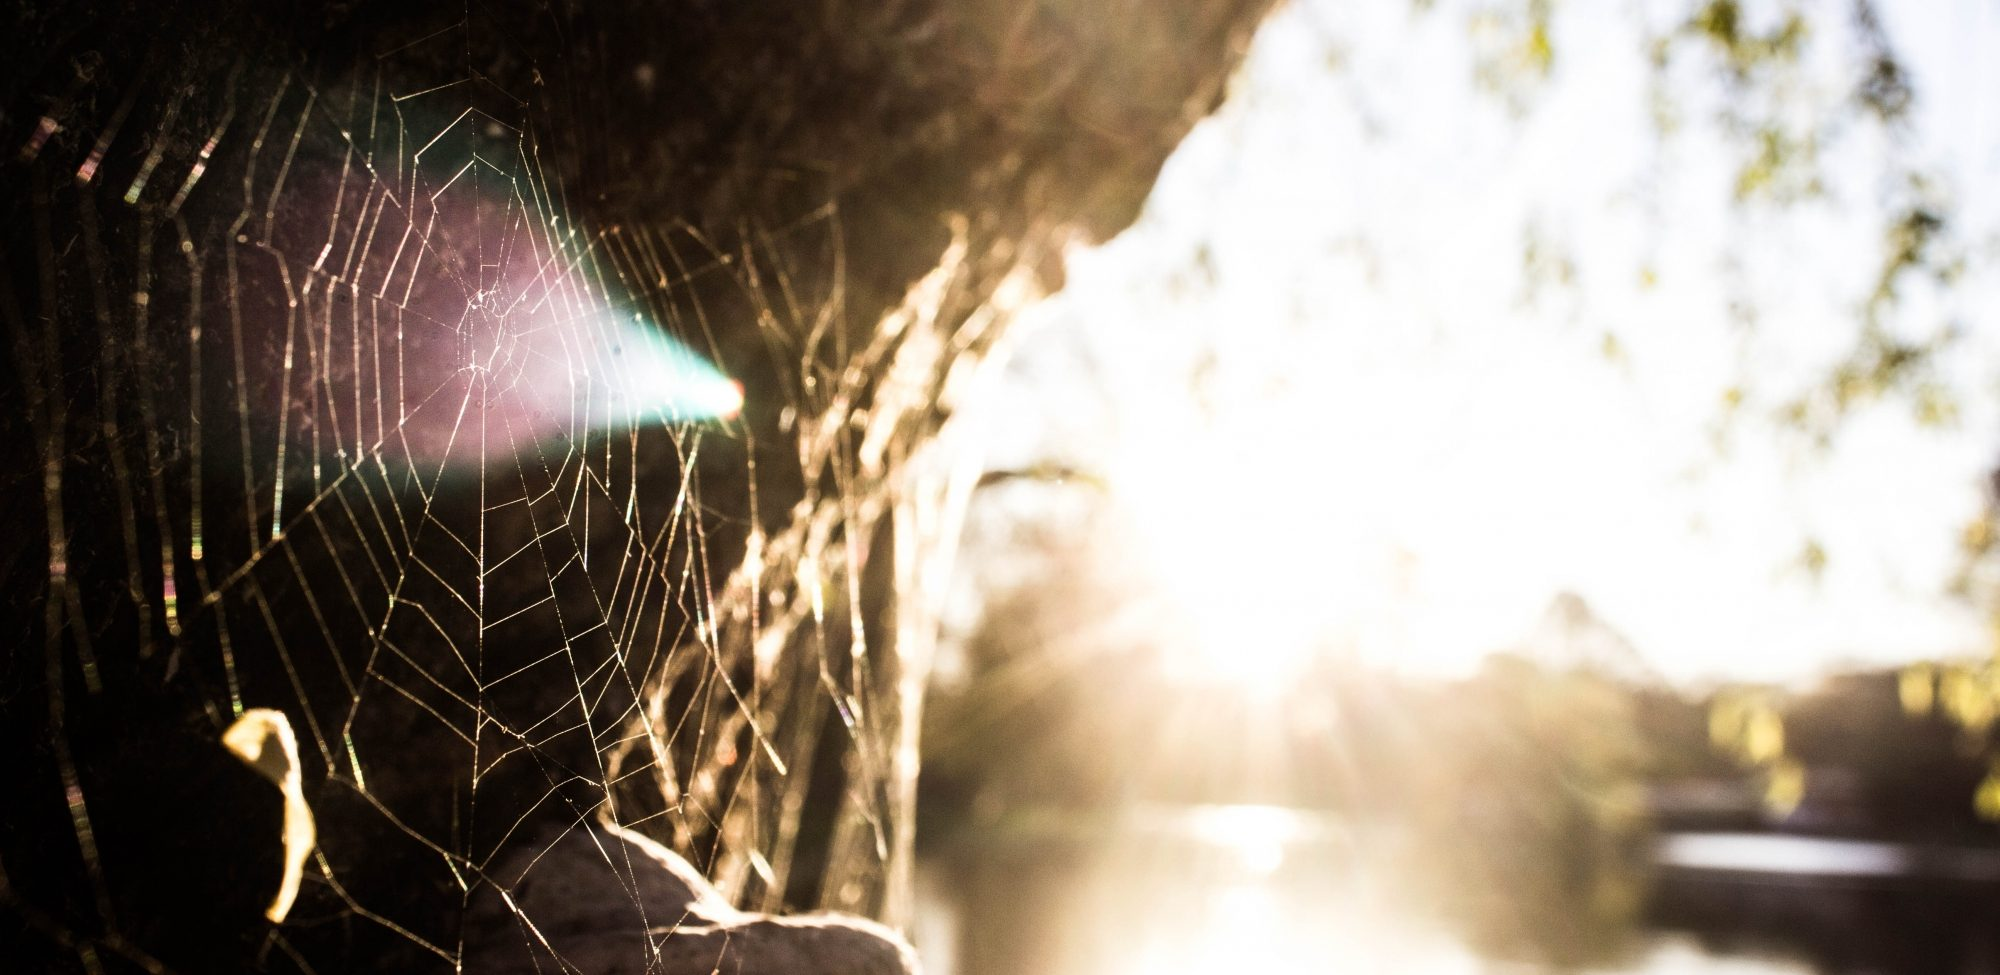 cobweb in sunlight